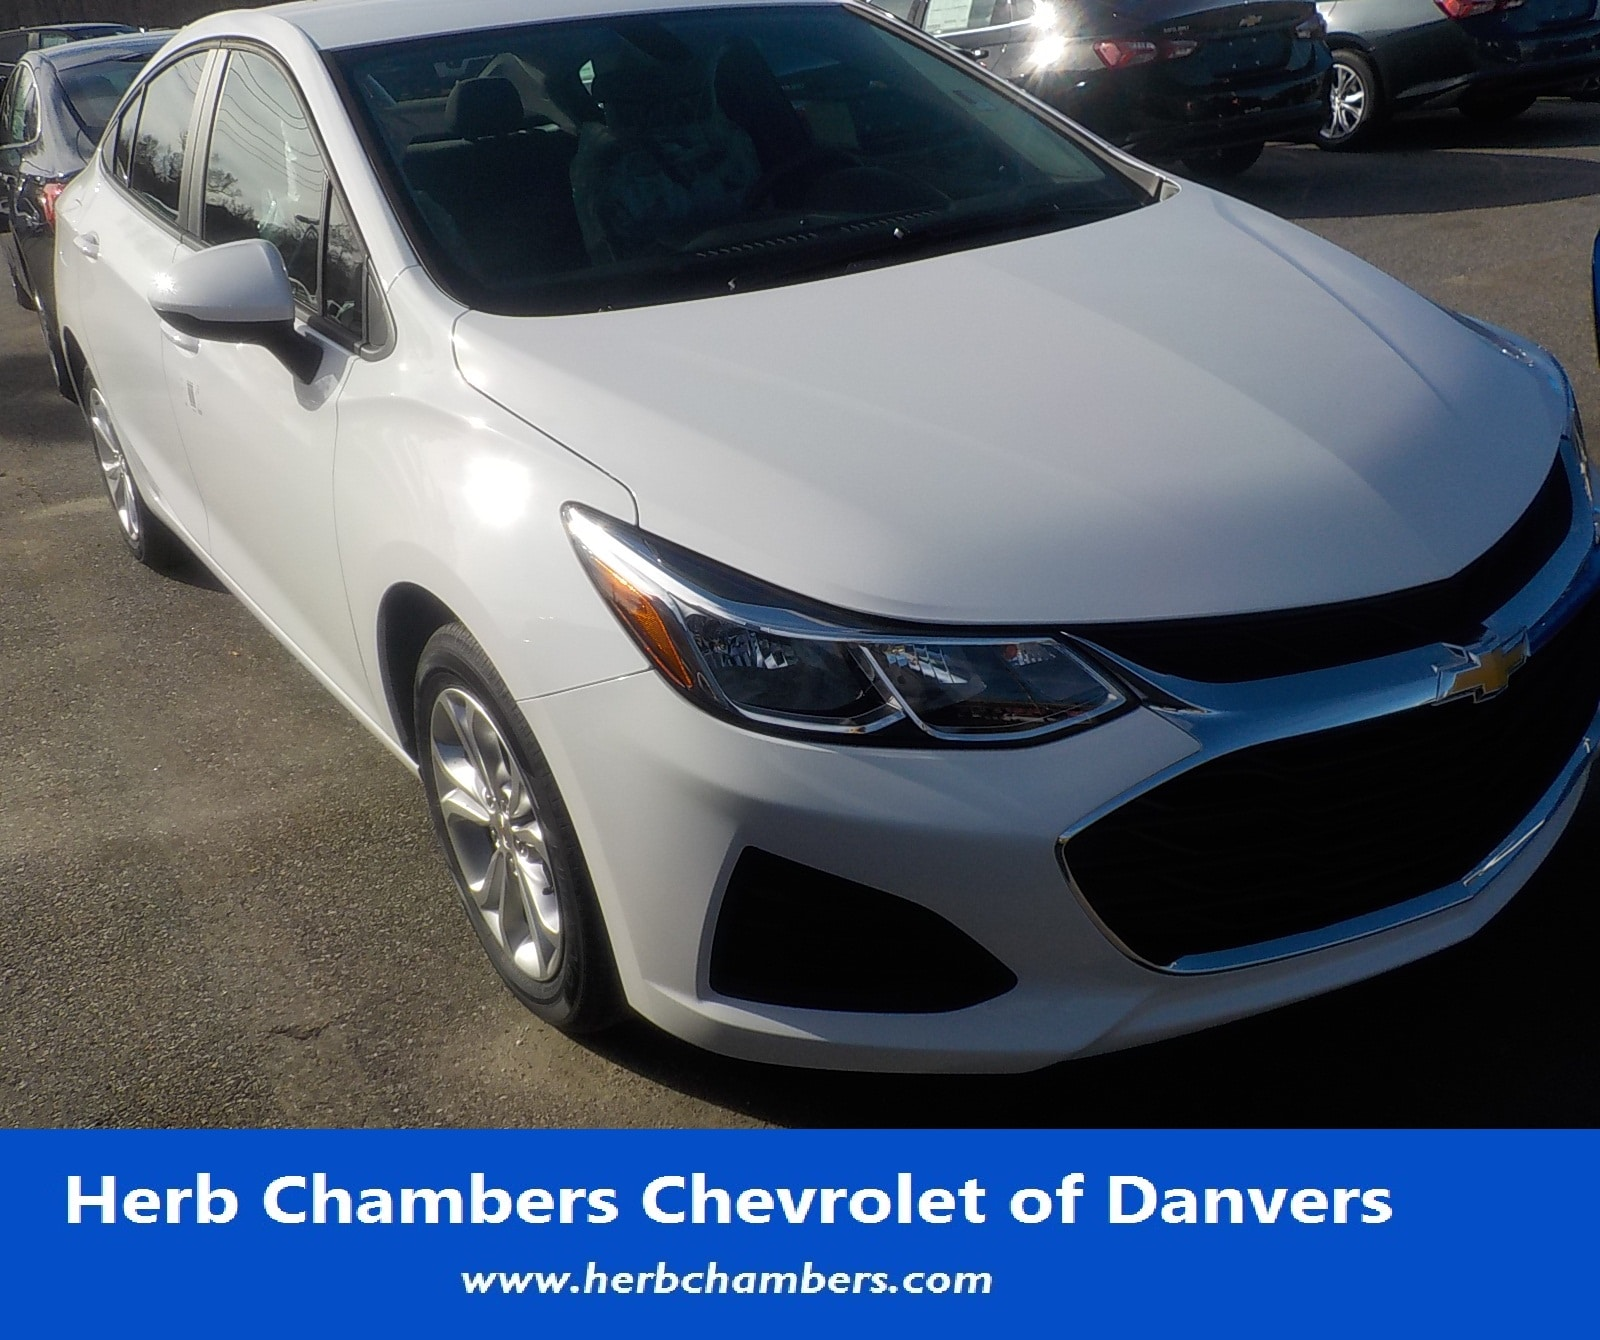 chevrolet cruze in danvers wakefield ma herb chambers chevrolet. Black Bedroom Furniture Sets. Home Design Ideas